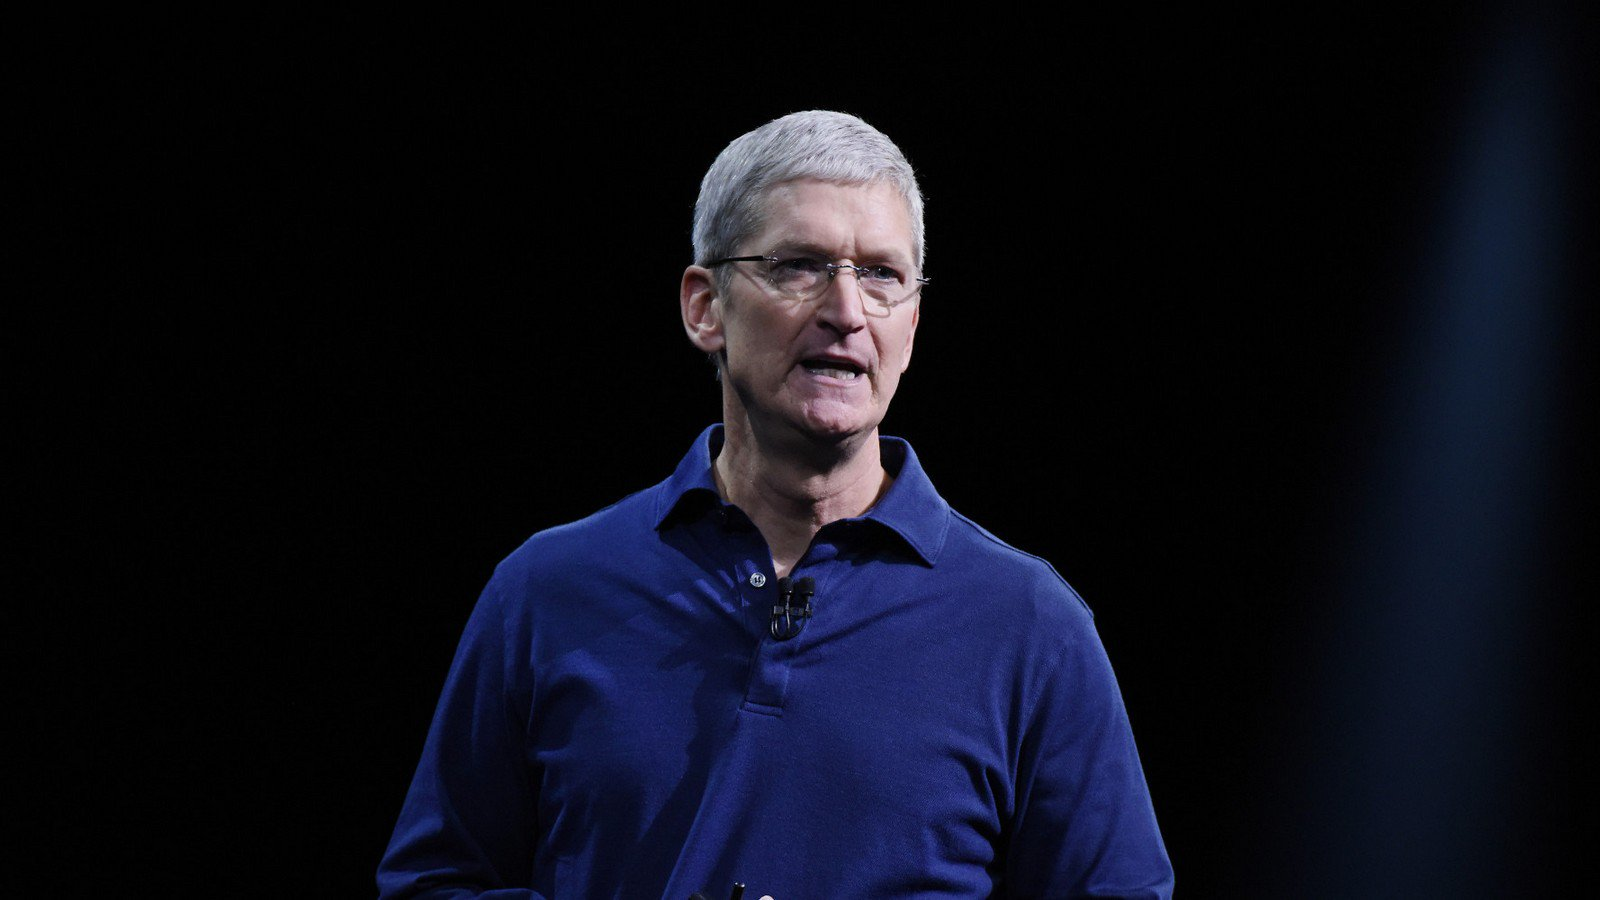 Tim cook became less likely to use an iPhone